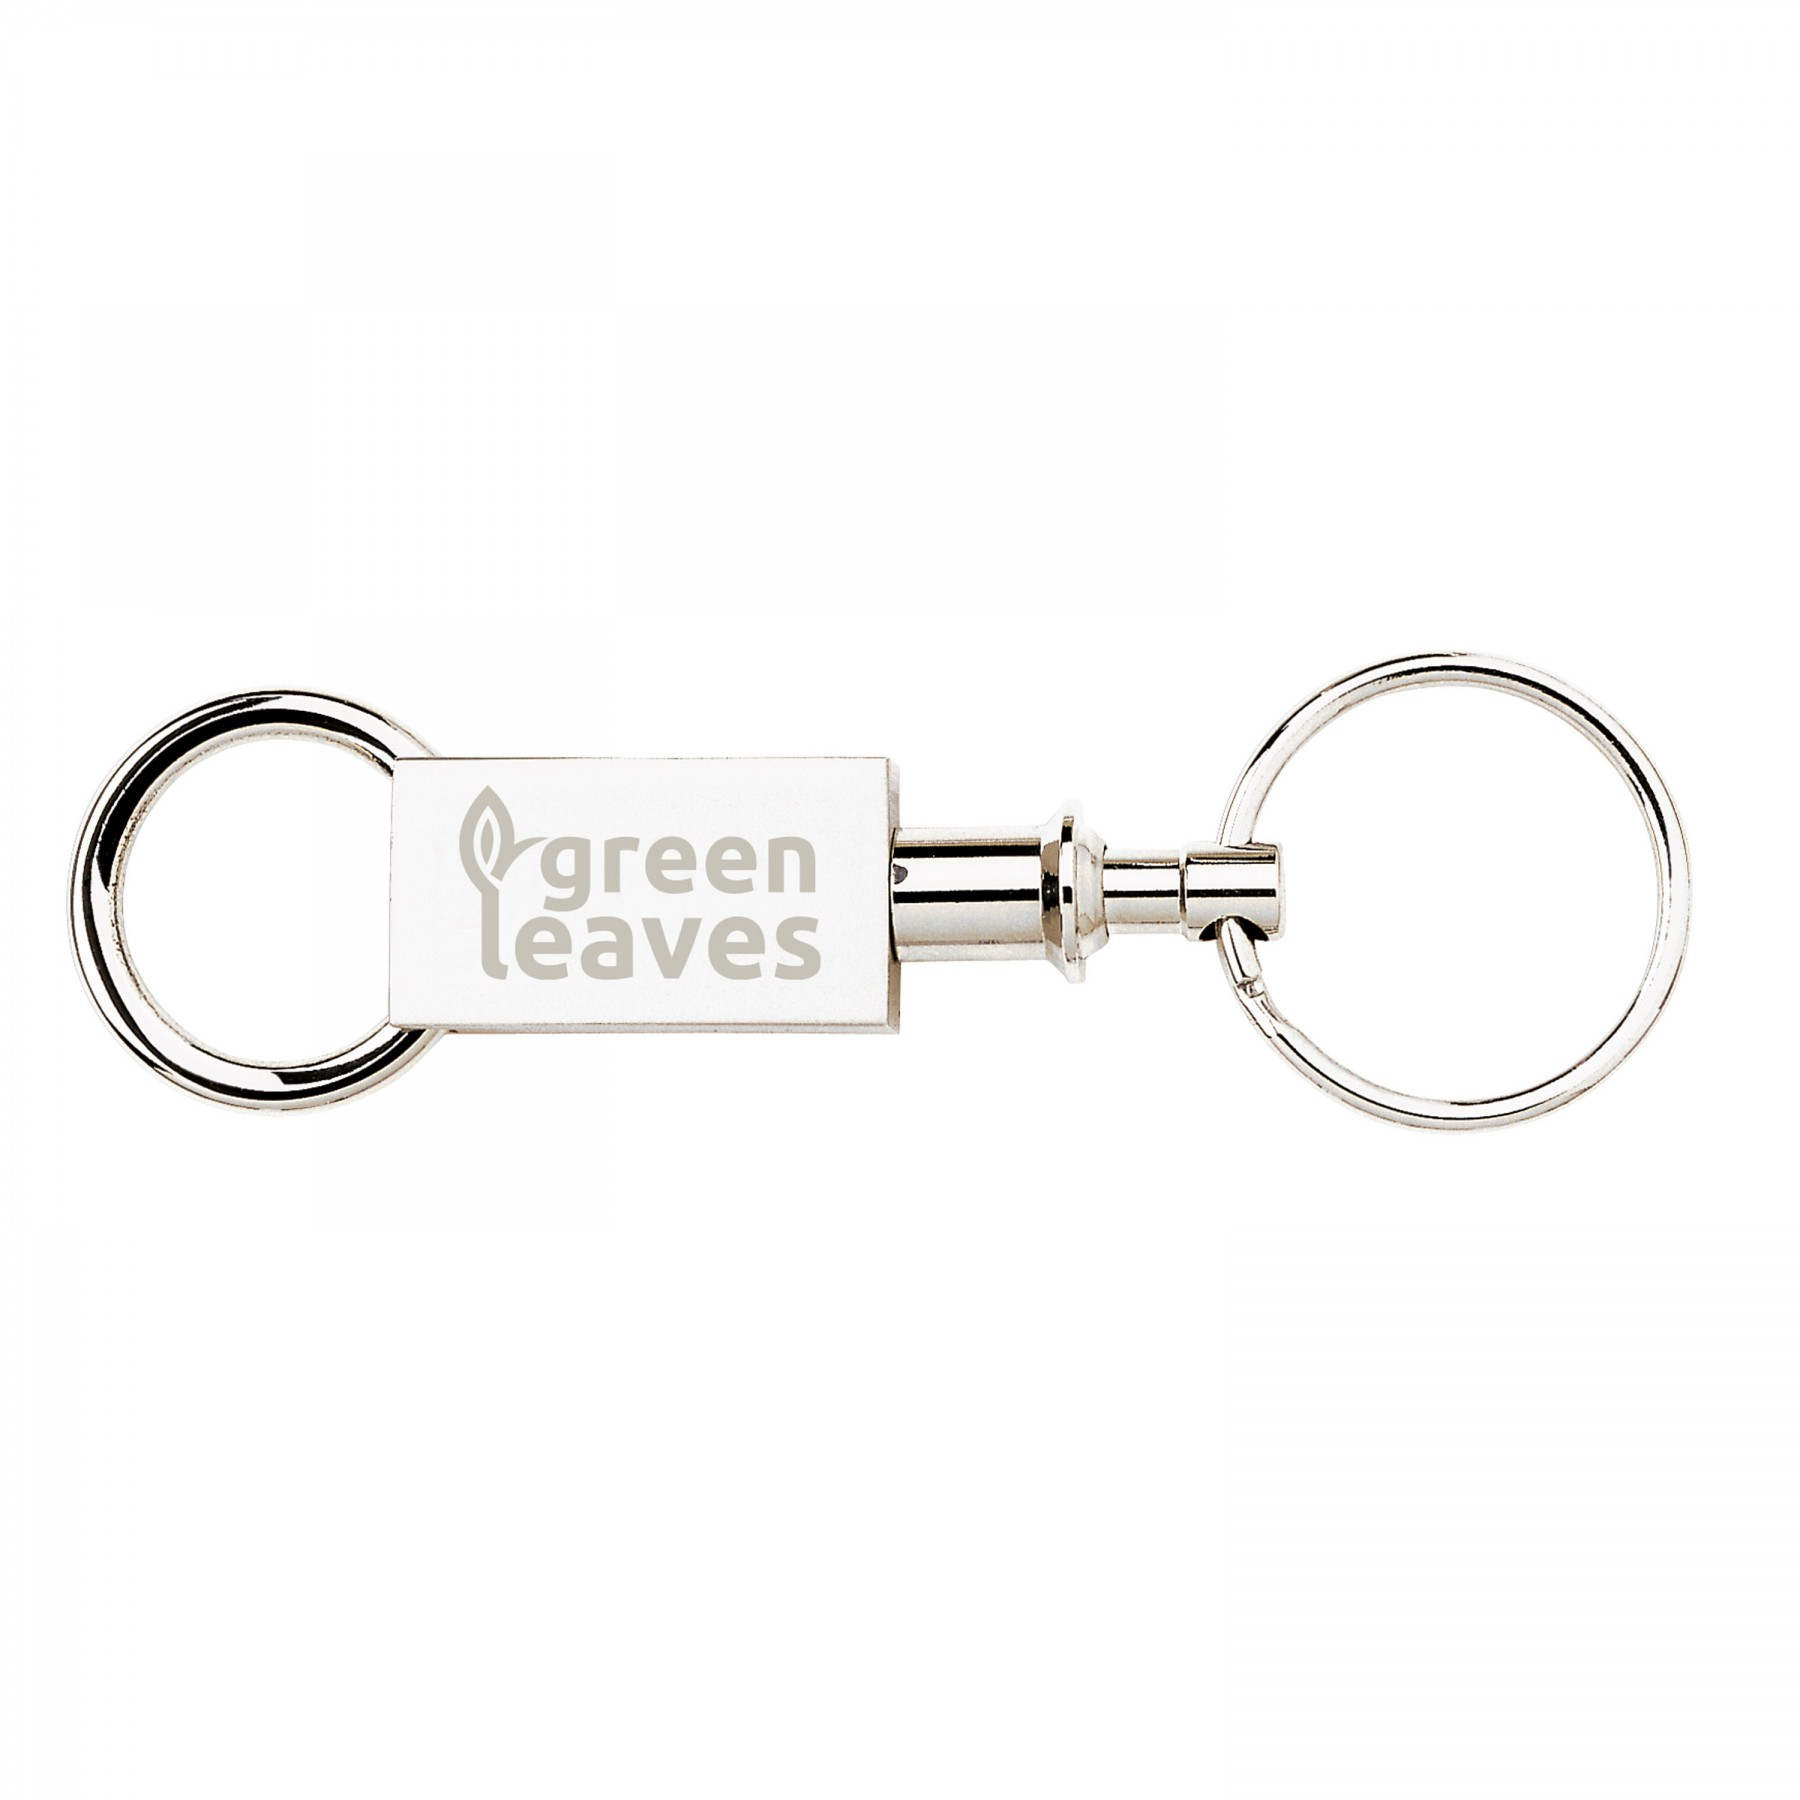 Pull-Apart Key Ring - Laser Engraved (G801)